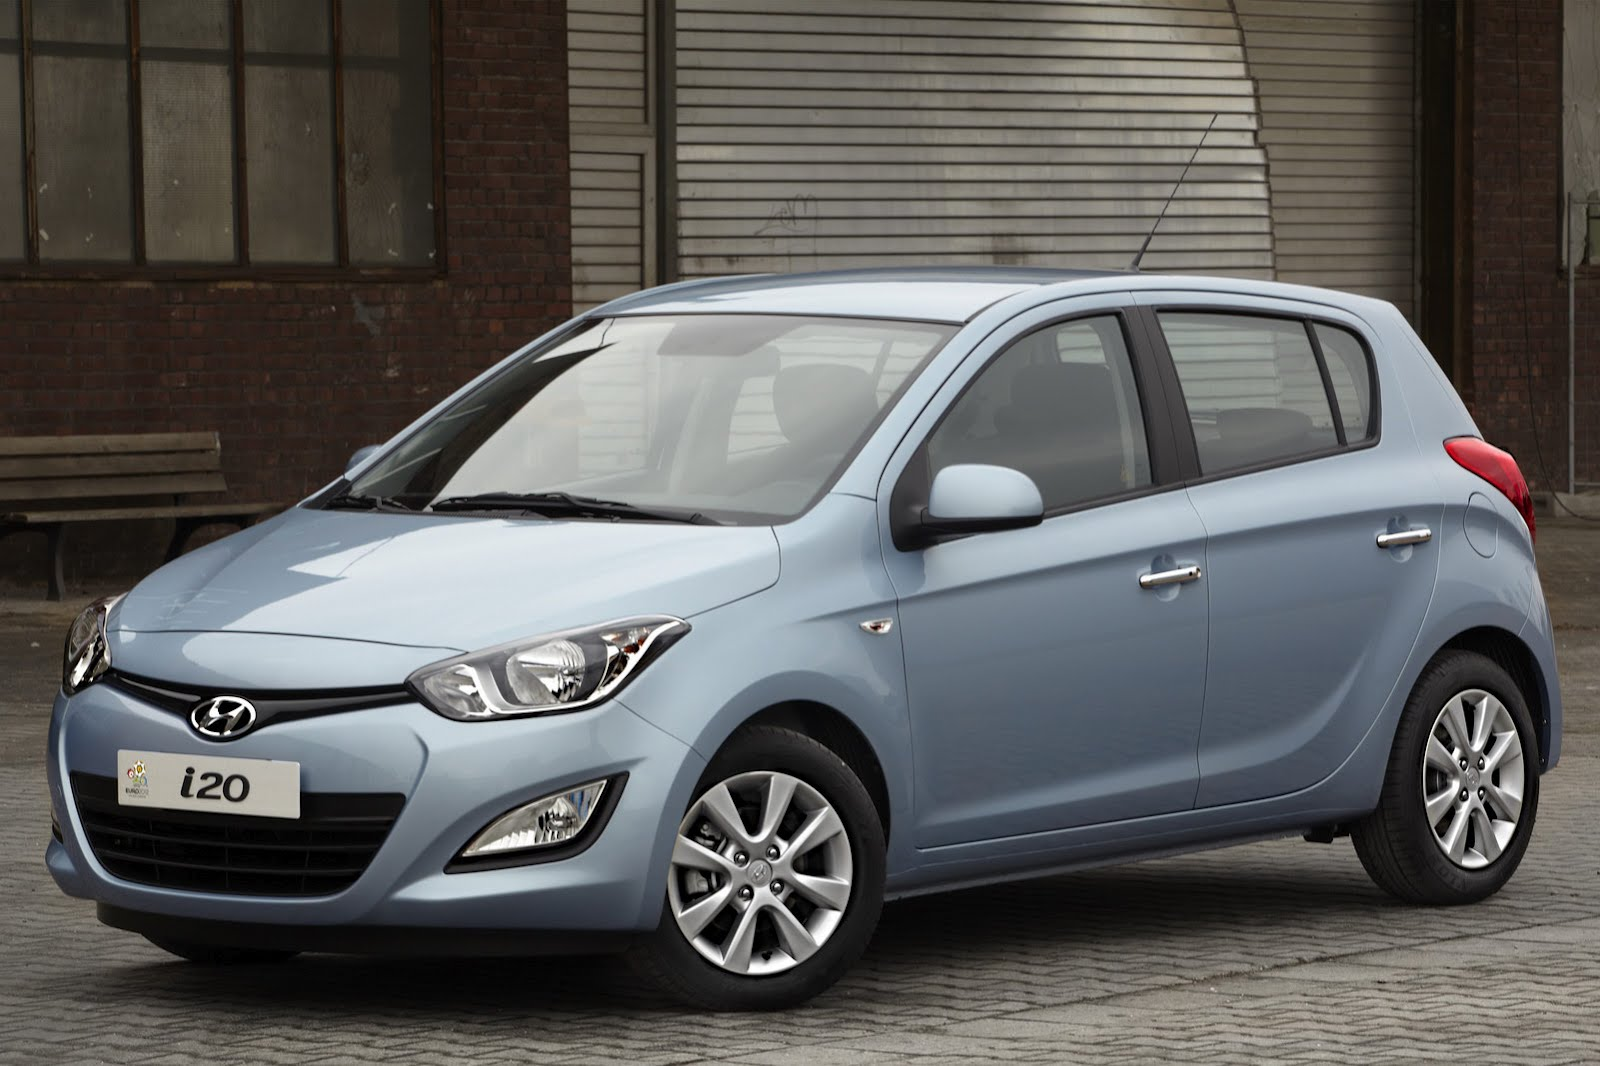 Hyundai i20 facelift Wallpapers Desktop Download